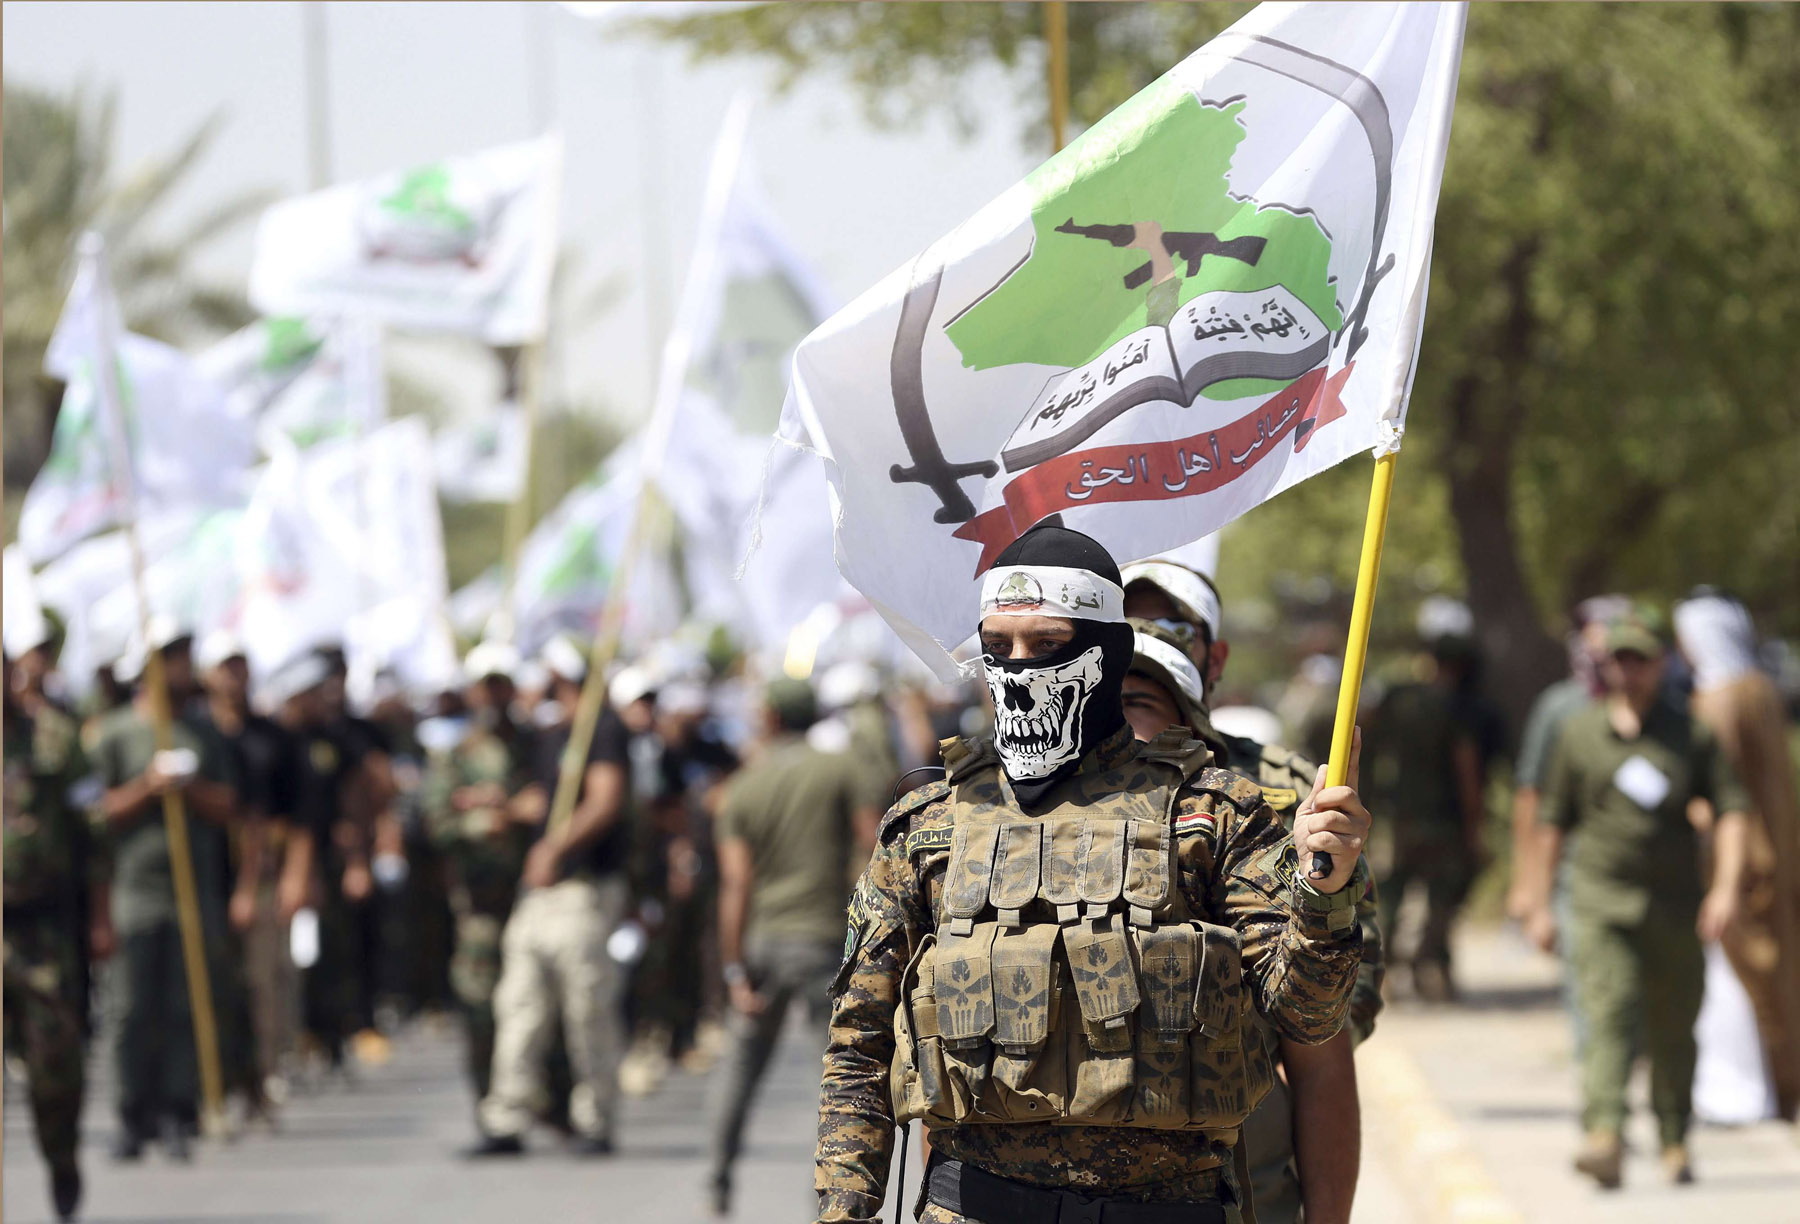 Alarming trend. Members of Shia group Asaib Ahl al-Haq march during the Quds Day gathering in Baghdad, last July. (AP)